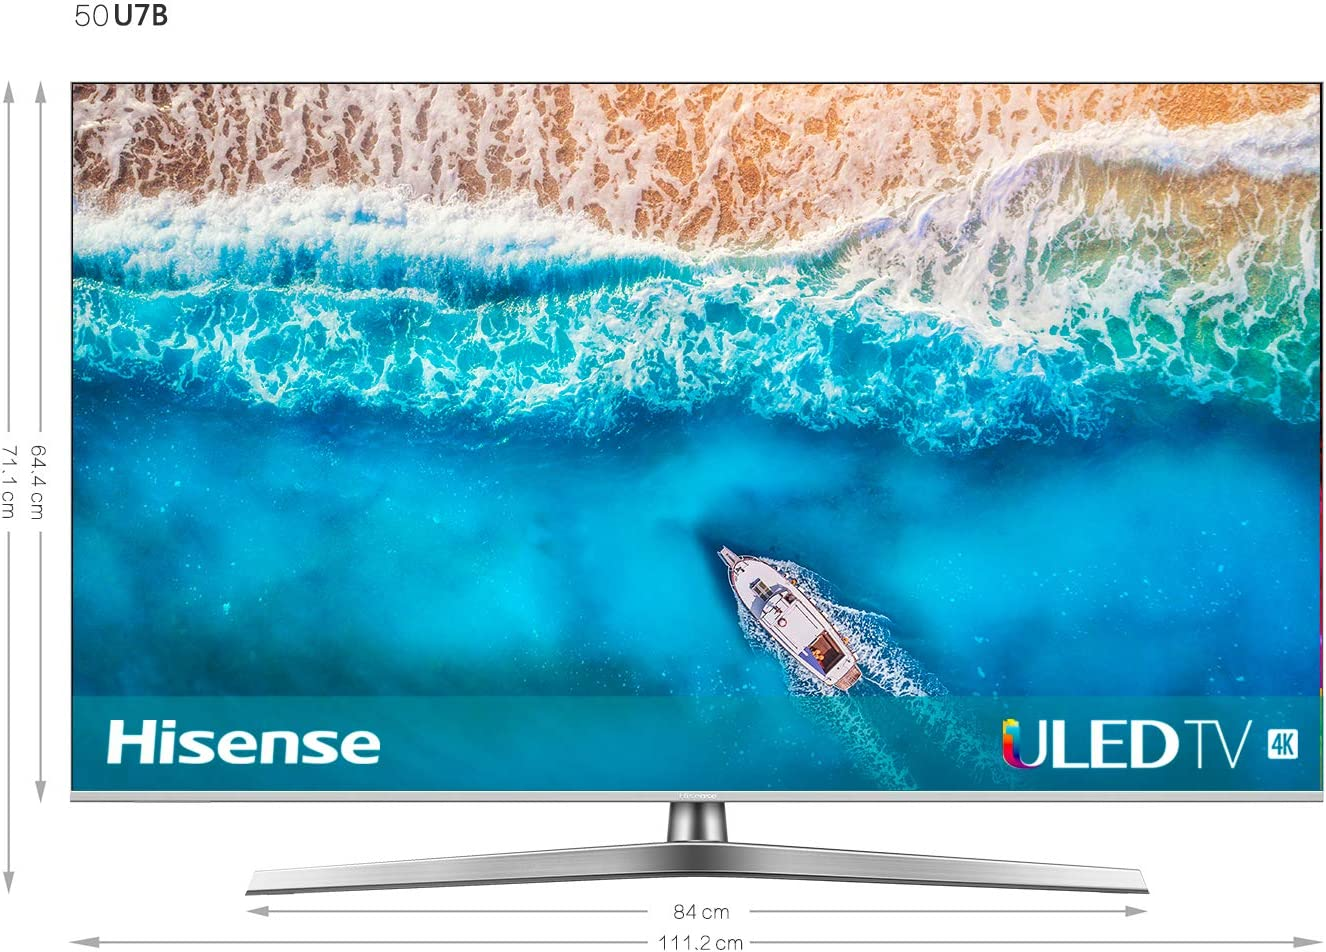 Hisense H50U7B - Smart TV ULED 50 4K Ultra HD con Alexa Integrada, Bluetooth, Dolby Vision HDR, HDR 10+, Audio Dolby Atmos, Ultra Dimming, Smart TV VIDAA U 3.0 IA, mando con